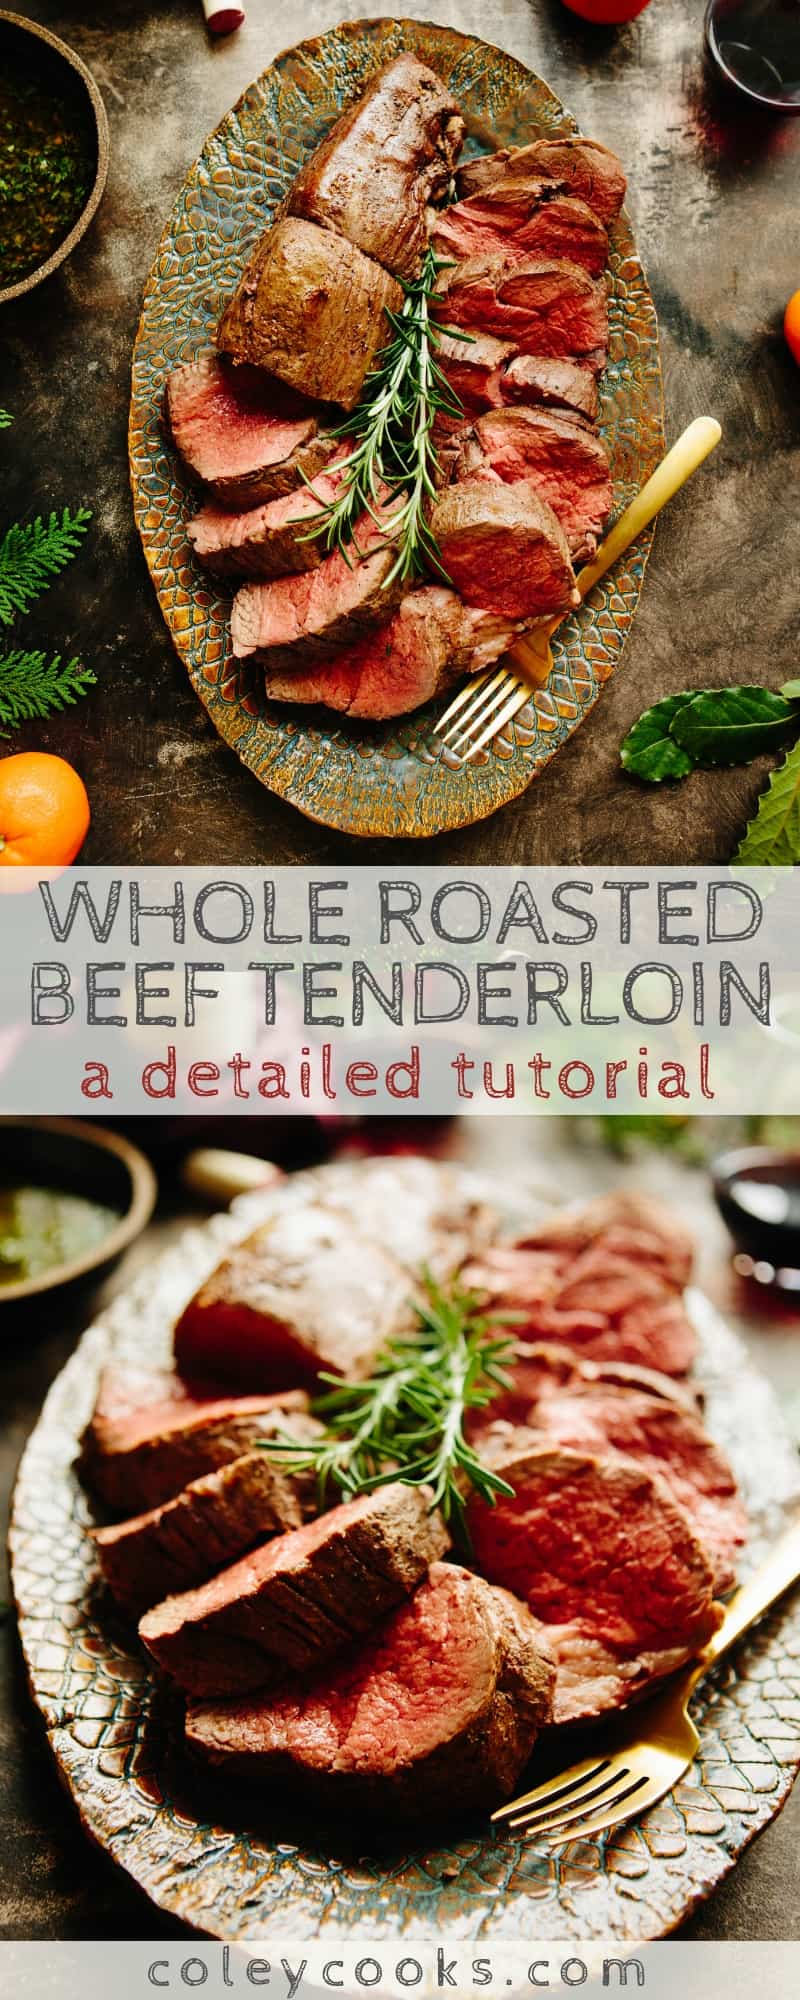 WHOLE ROASTED BEEF TENDERLOIN | Detailed tutorial on how to roast a whole beef tenderloin (filet mignon) with wine pairings and serving ideas! Perfect for holiday entertaining #meat #beef #filetmignon #tenderloin #easy #foolproof #recipe | ColeyCooks.com